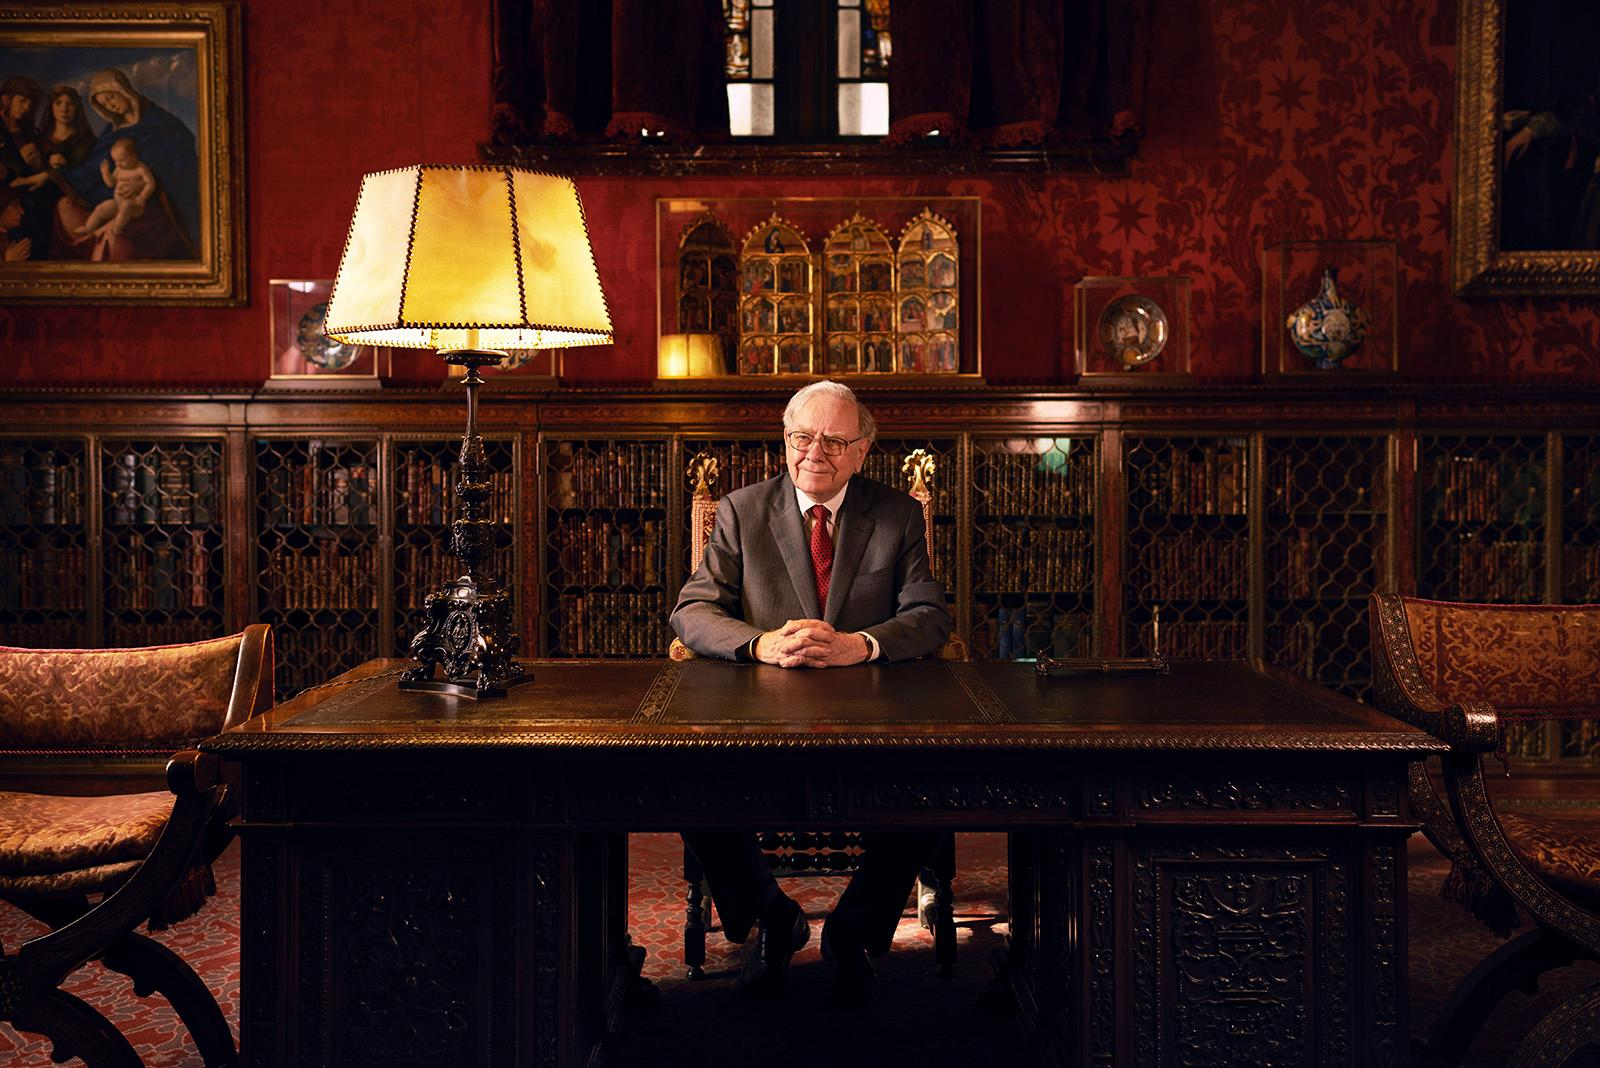 Behind The Photo: Warren Buffett At J.P. Morgan's Desk